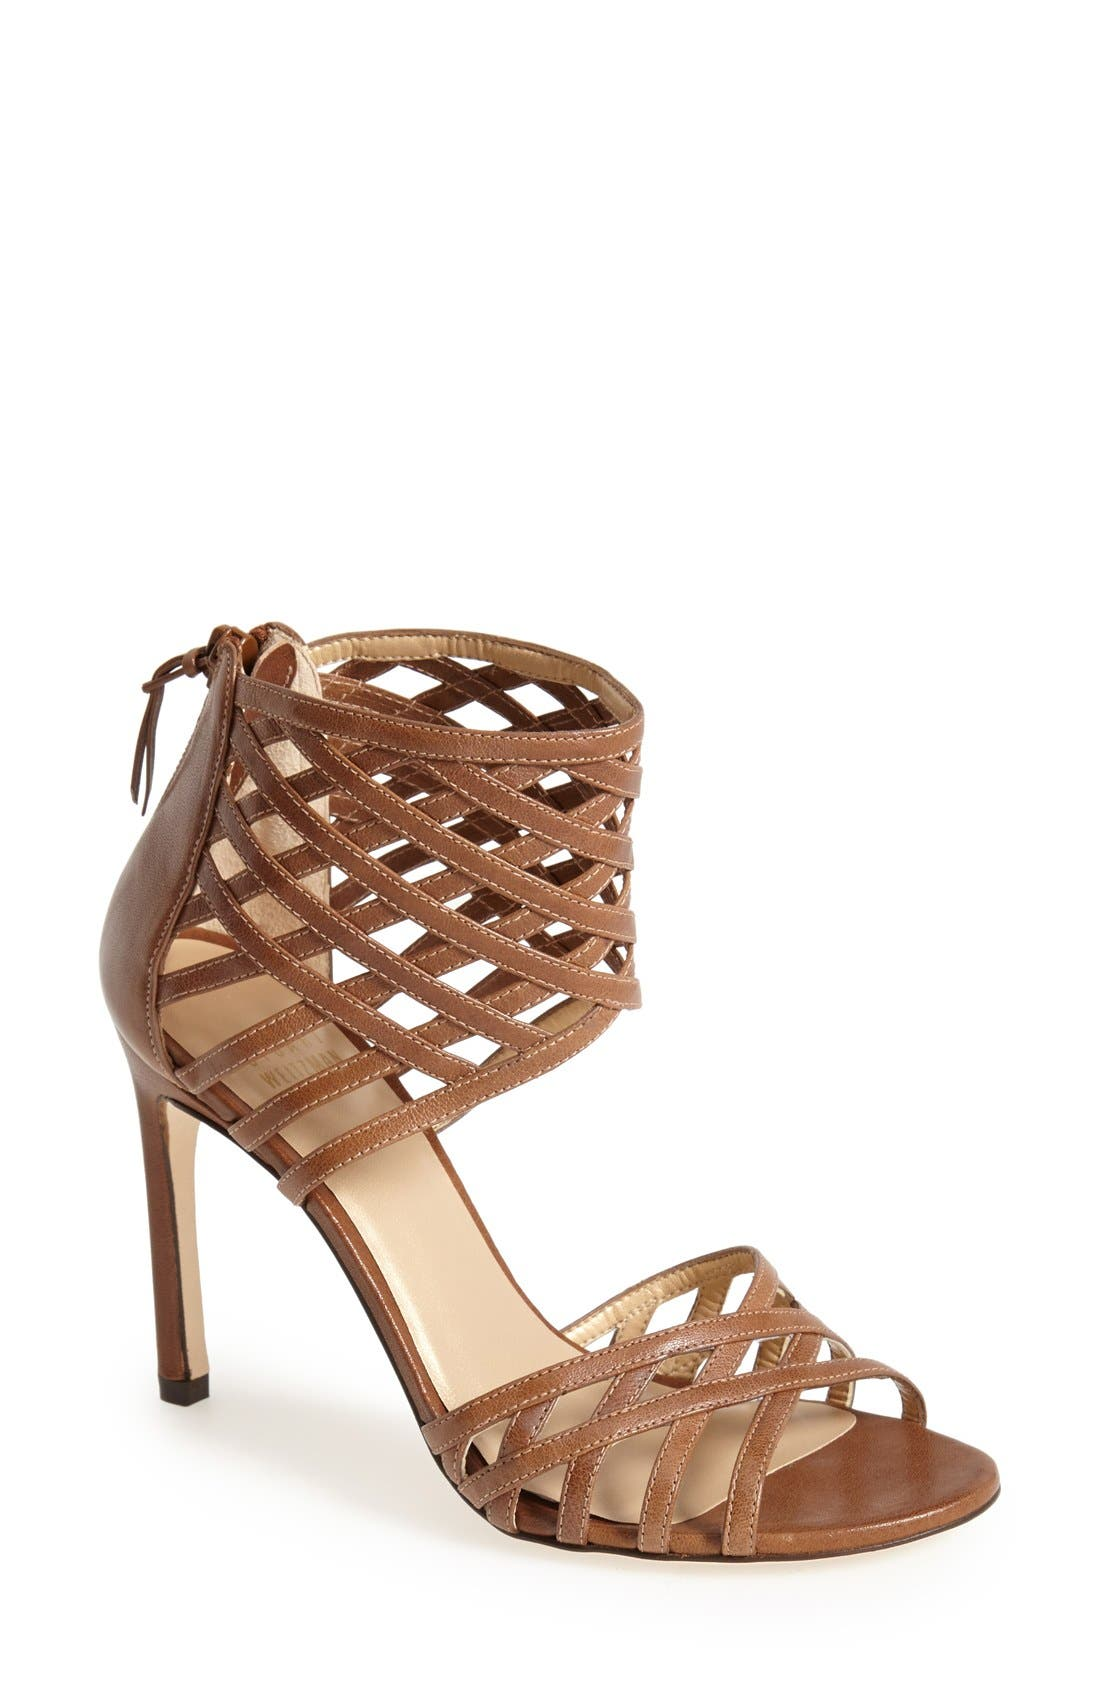 Main Image - Stuart Weitzman 'Cajun' Leather Sandal (Women)